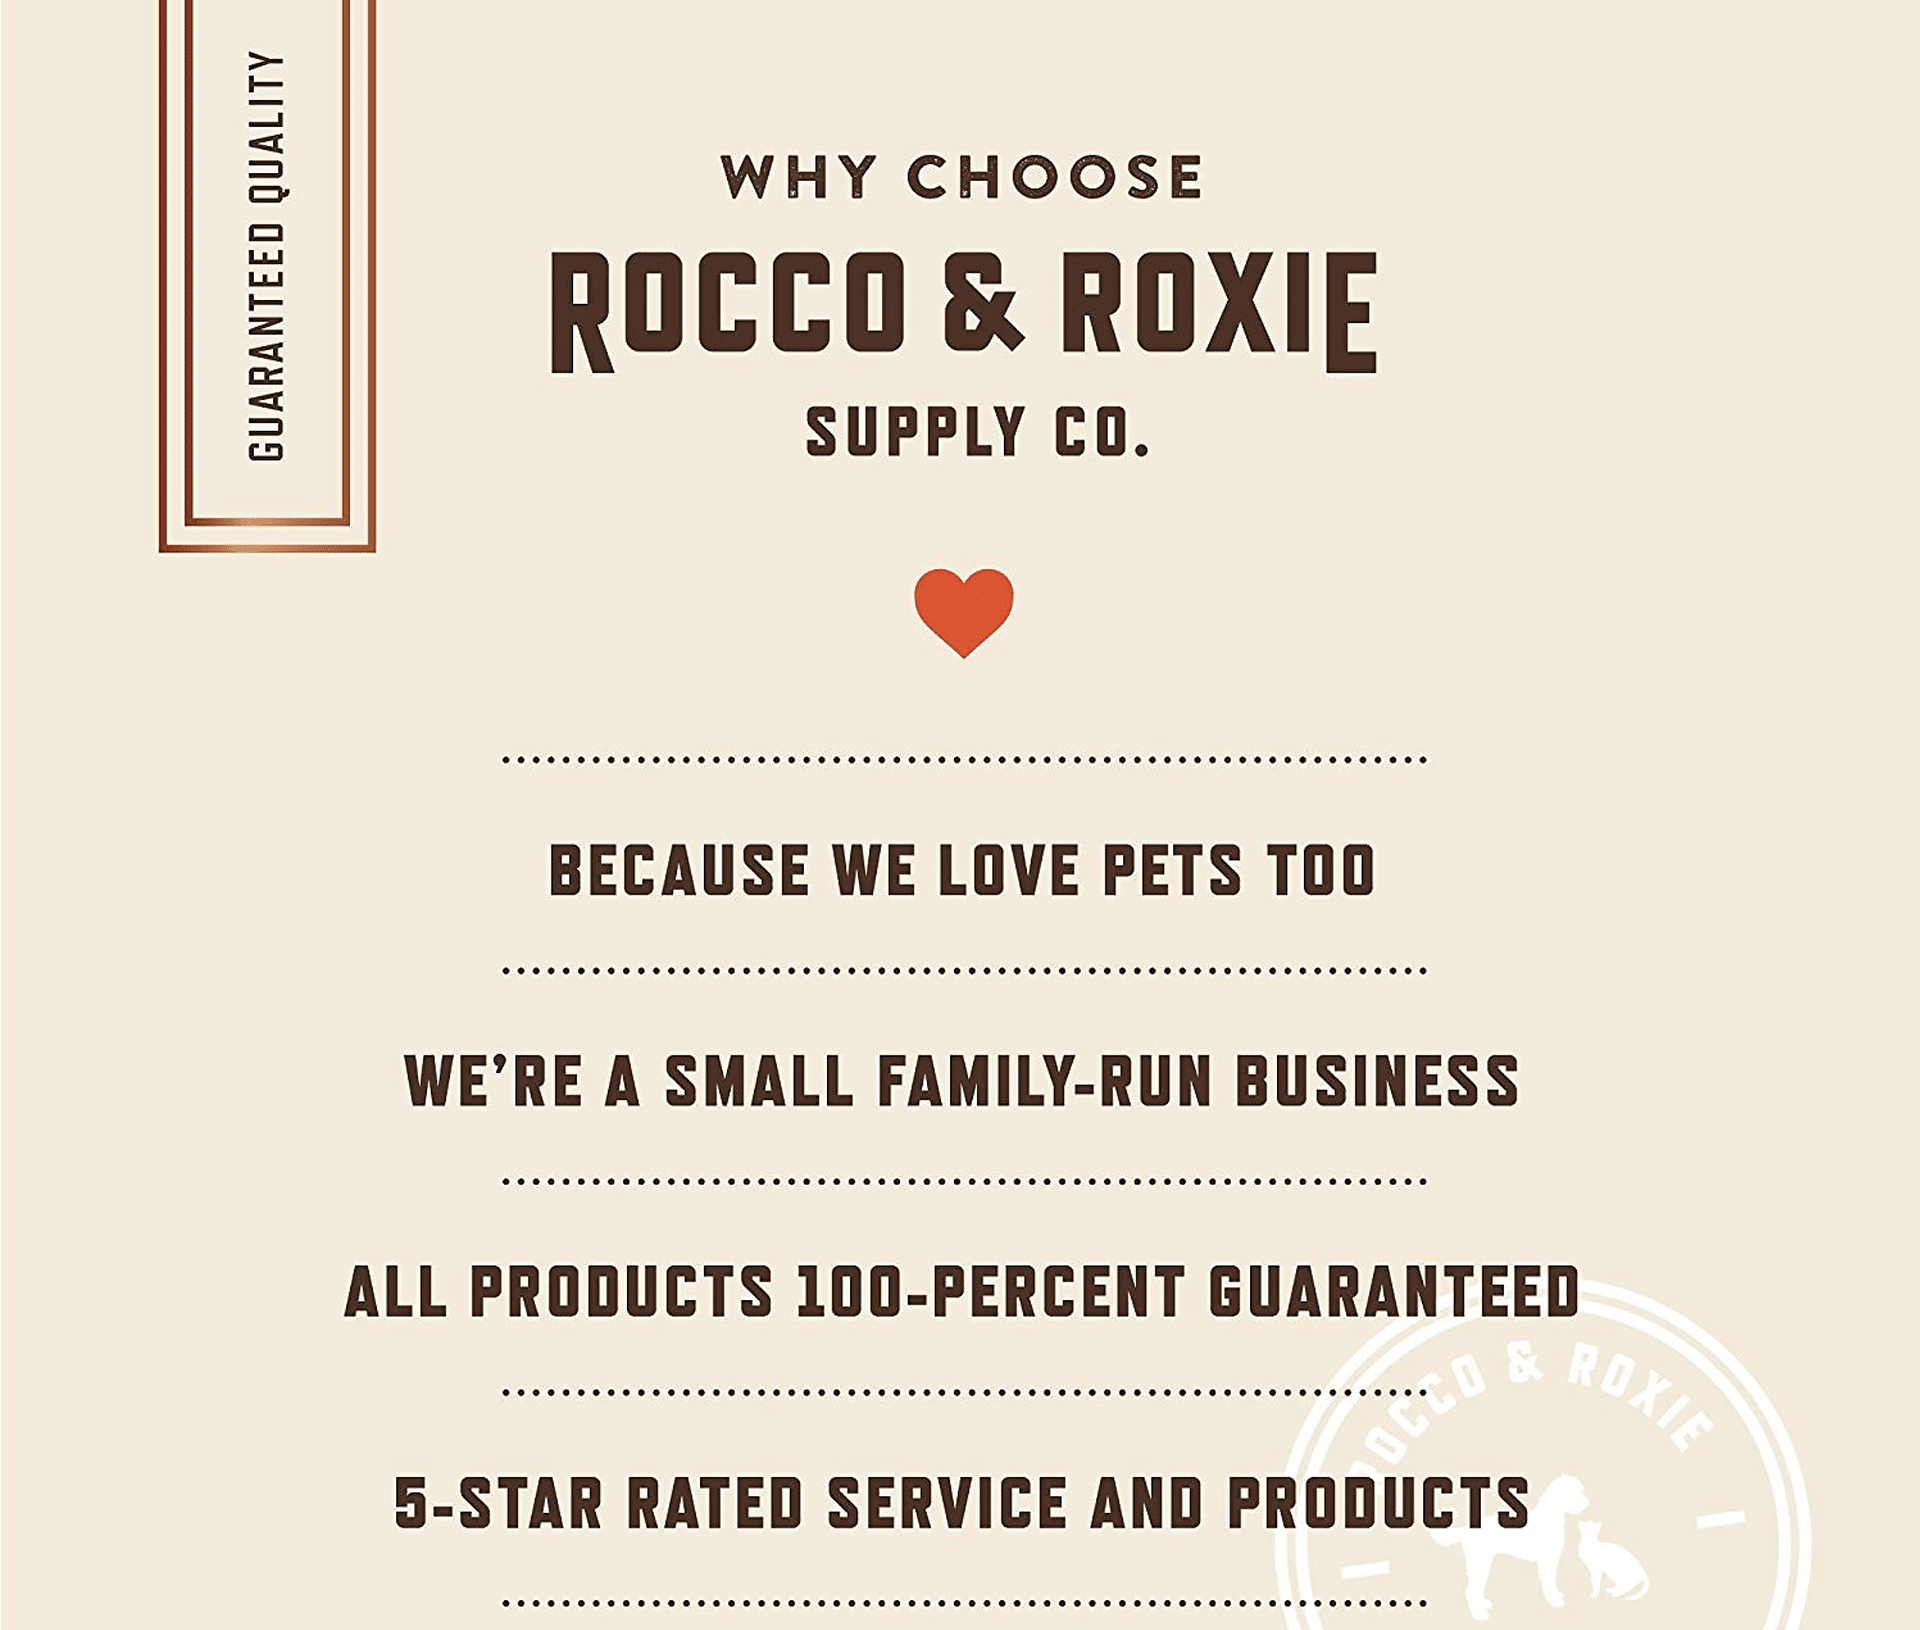 Rocco & Roxie Supply Co., Calm Shampoo